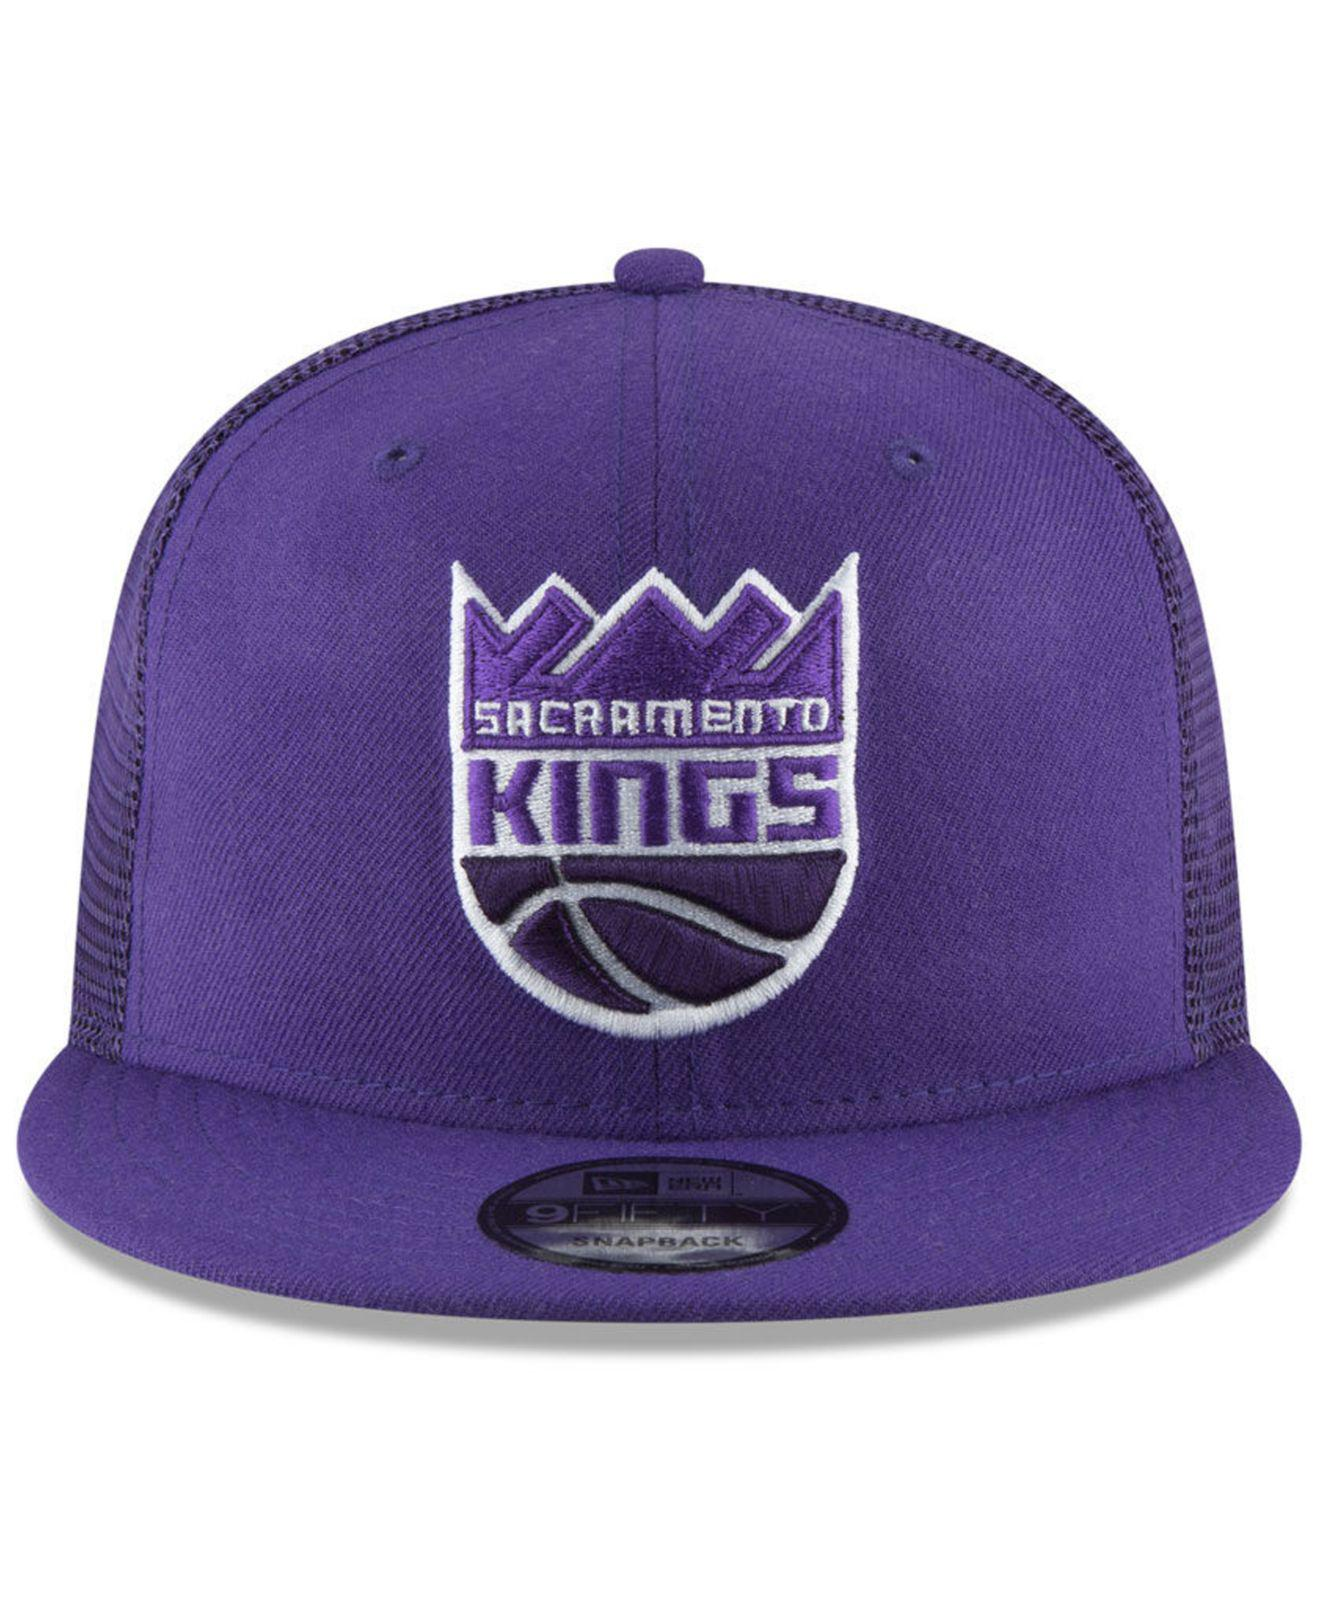 low priced bff8a 628a1 ... free shipping lyst ktz sacramento kings almost tonal trucker 9fifty  snapback cap in gray for men